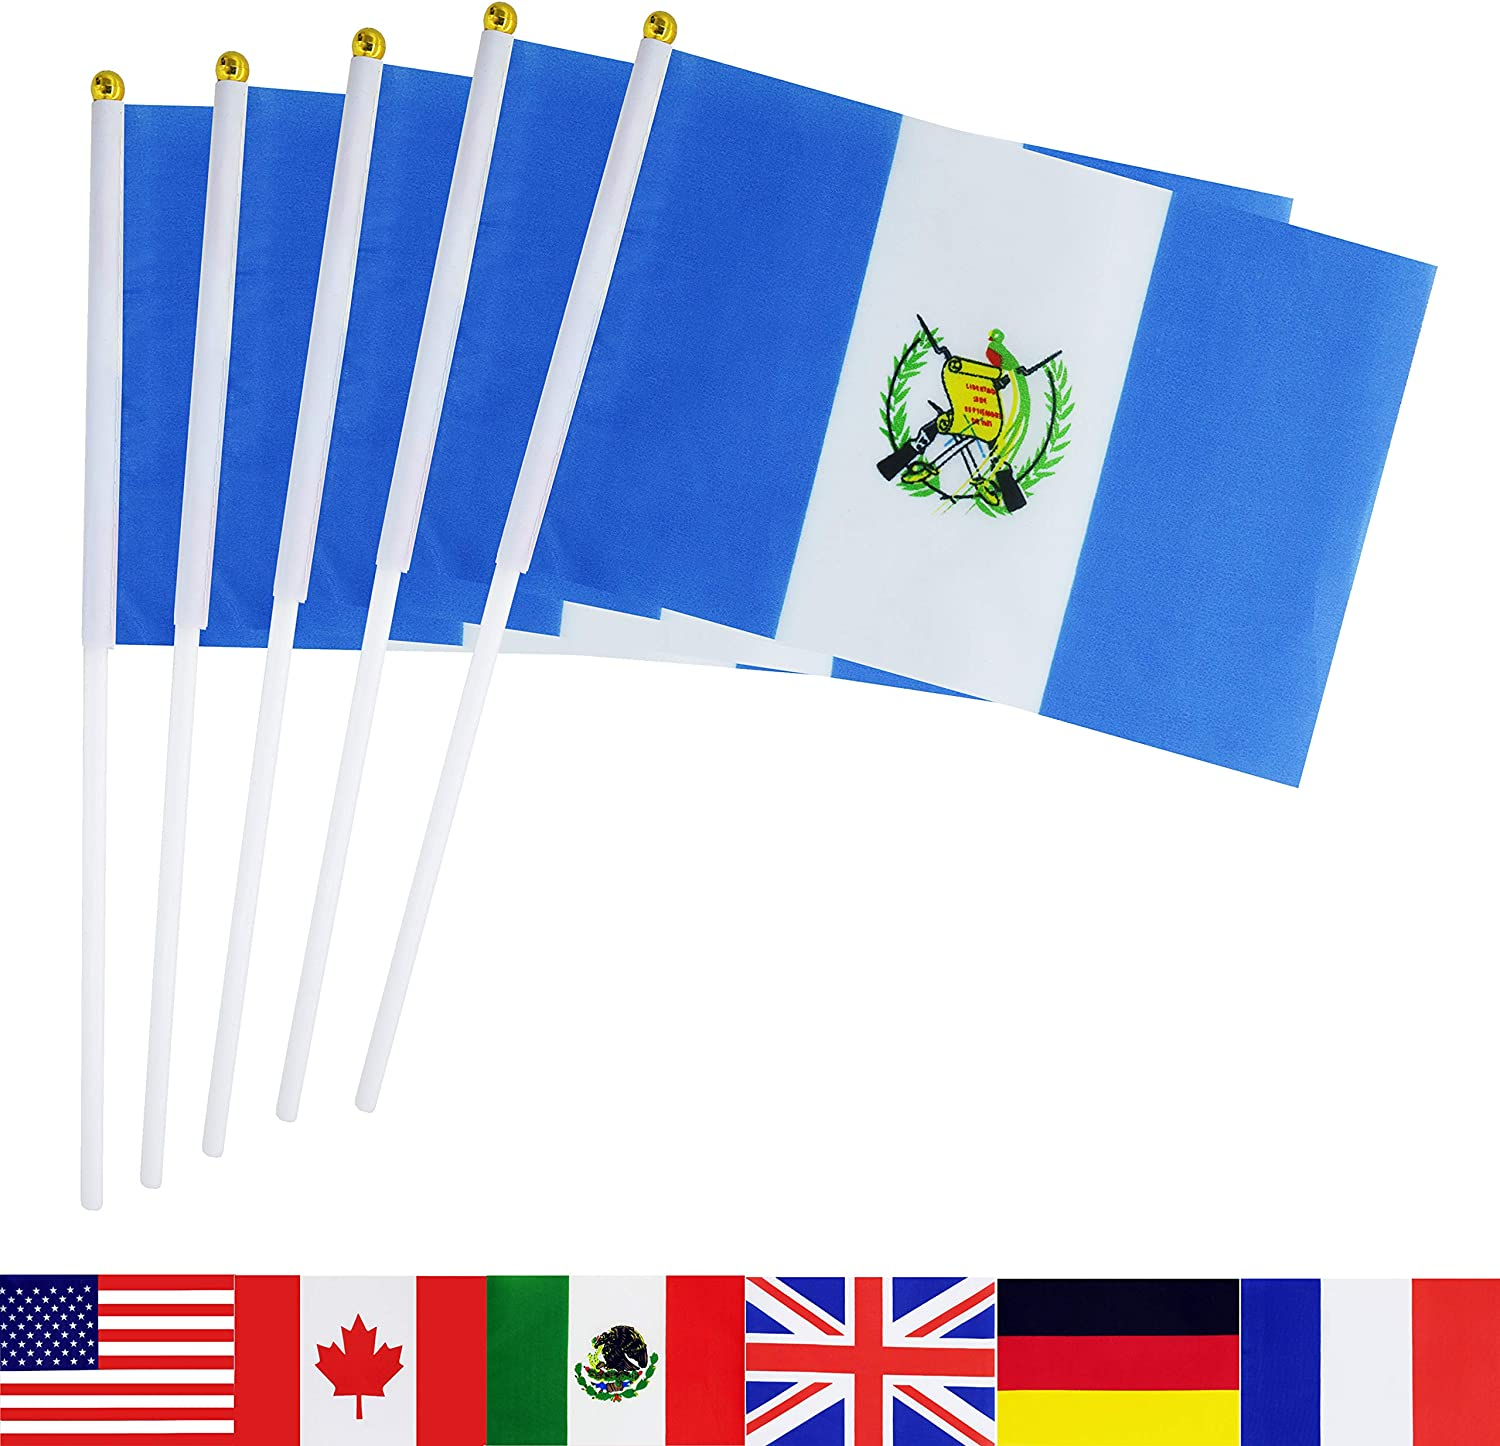 TSMD Guatemala Stick Flag, 50 Pack Hand Held Small Guatemalan National Flags On Stick,International World Country Stick Flags Banners,Party Decorations for Olympics,Sports Clubs,Festival Events